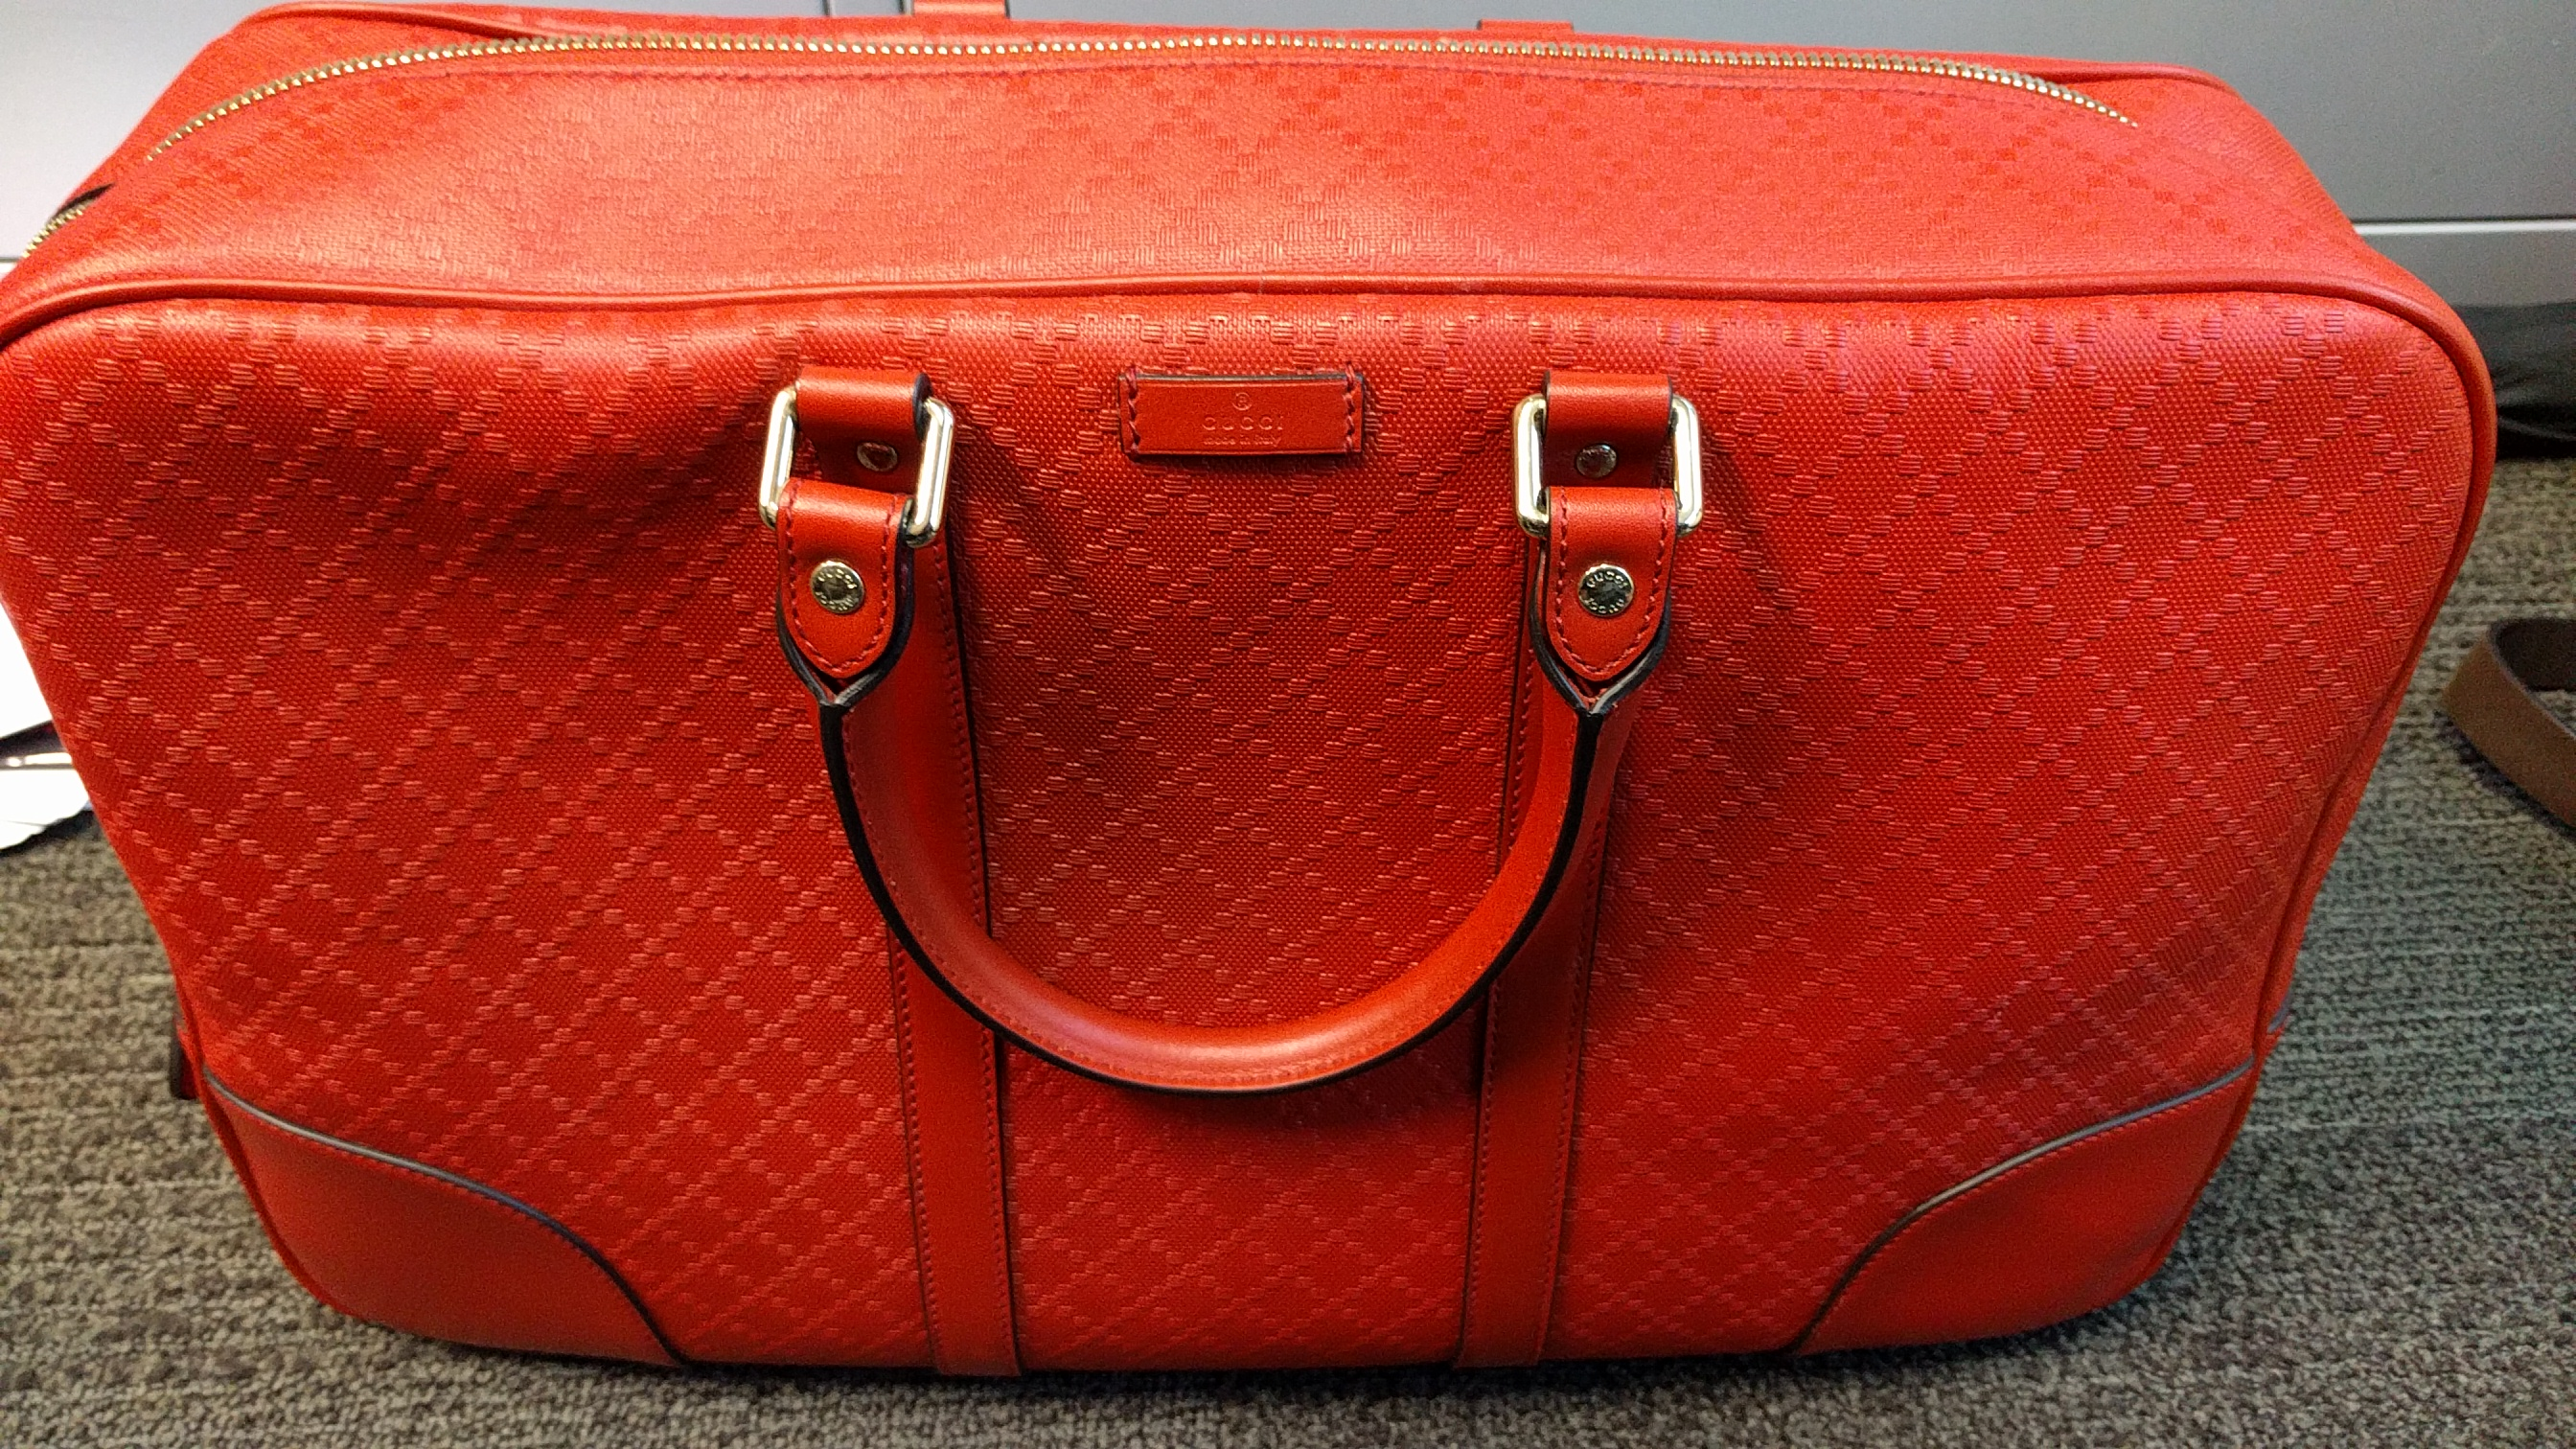 87ac781e53fe67 Gucci Diamante Leather Holdall / Duffle Bag - Almost New | Grailed